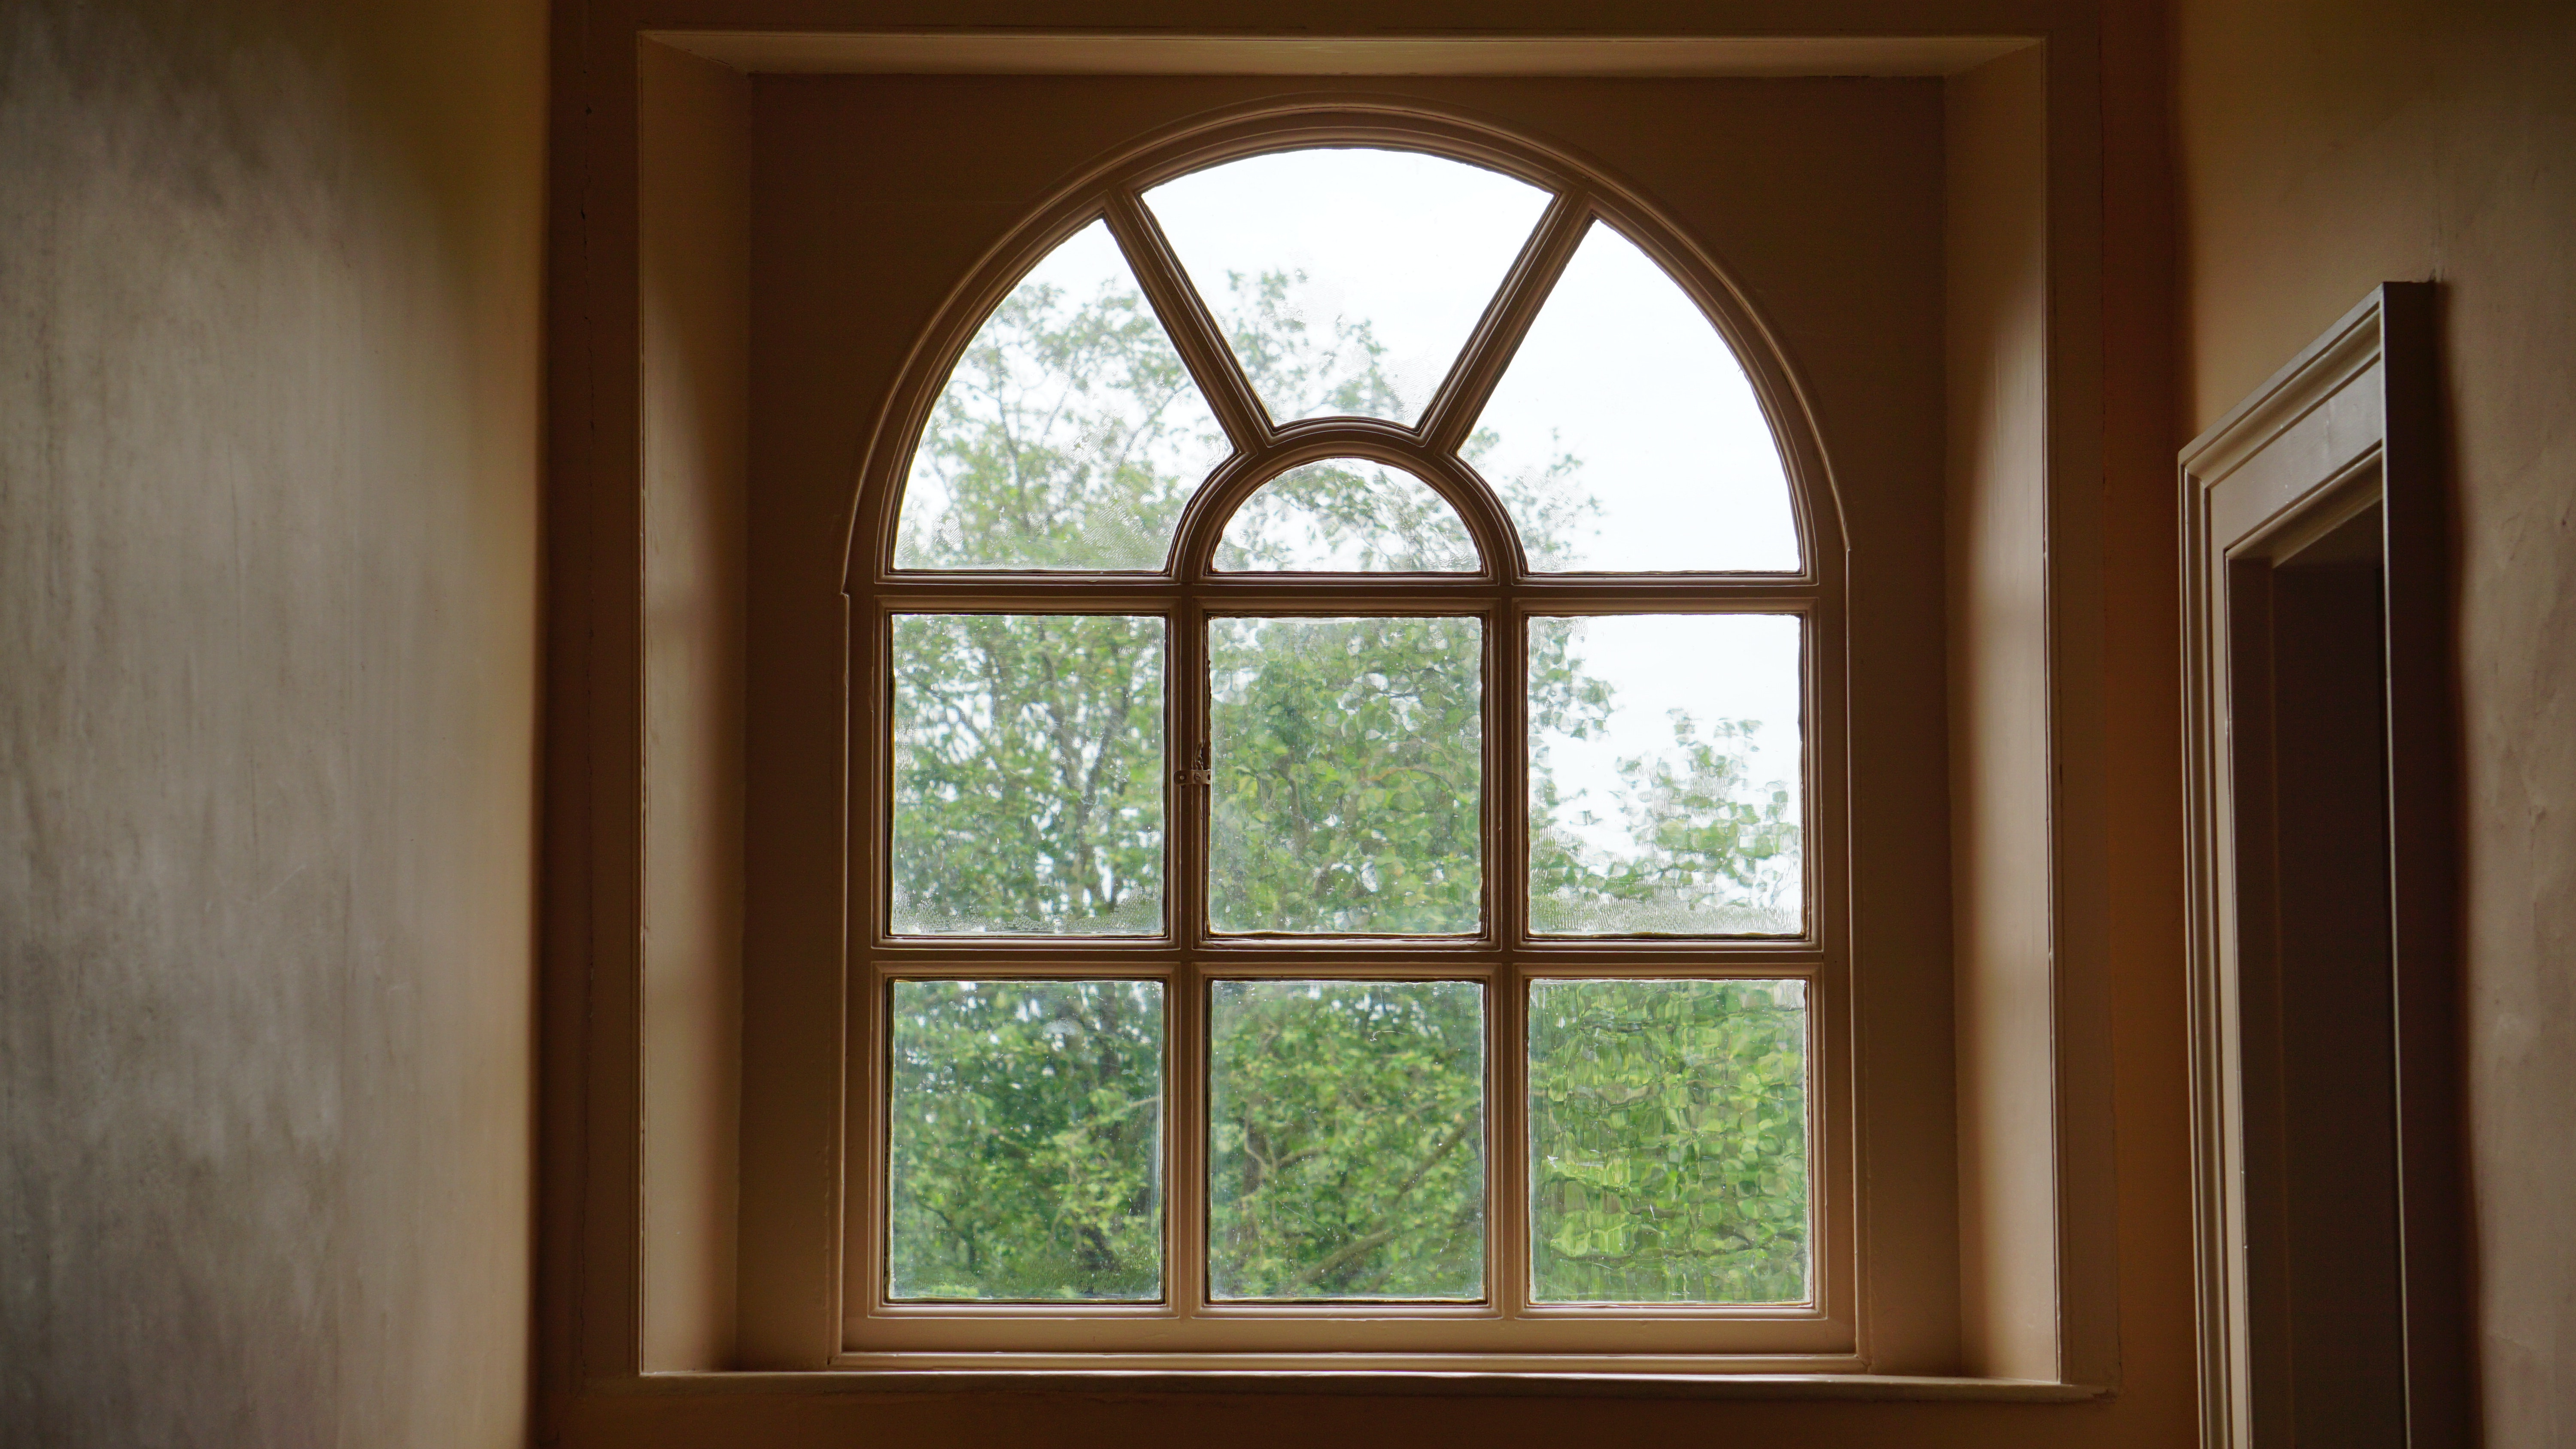 we have photos of window frames house windows window designs wooden windows square and round windows all images are handpicked by us before published